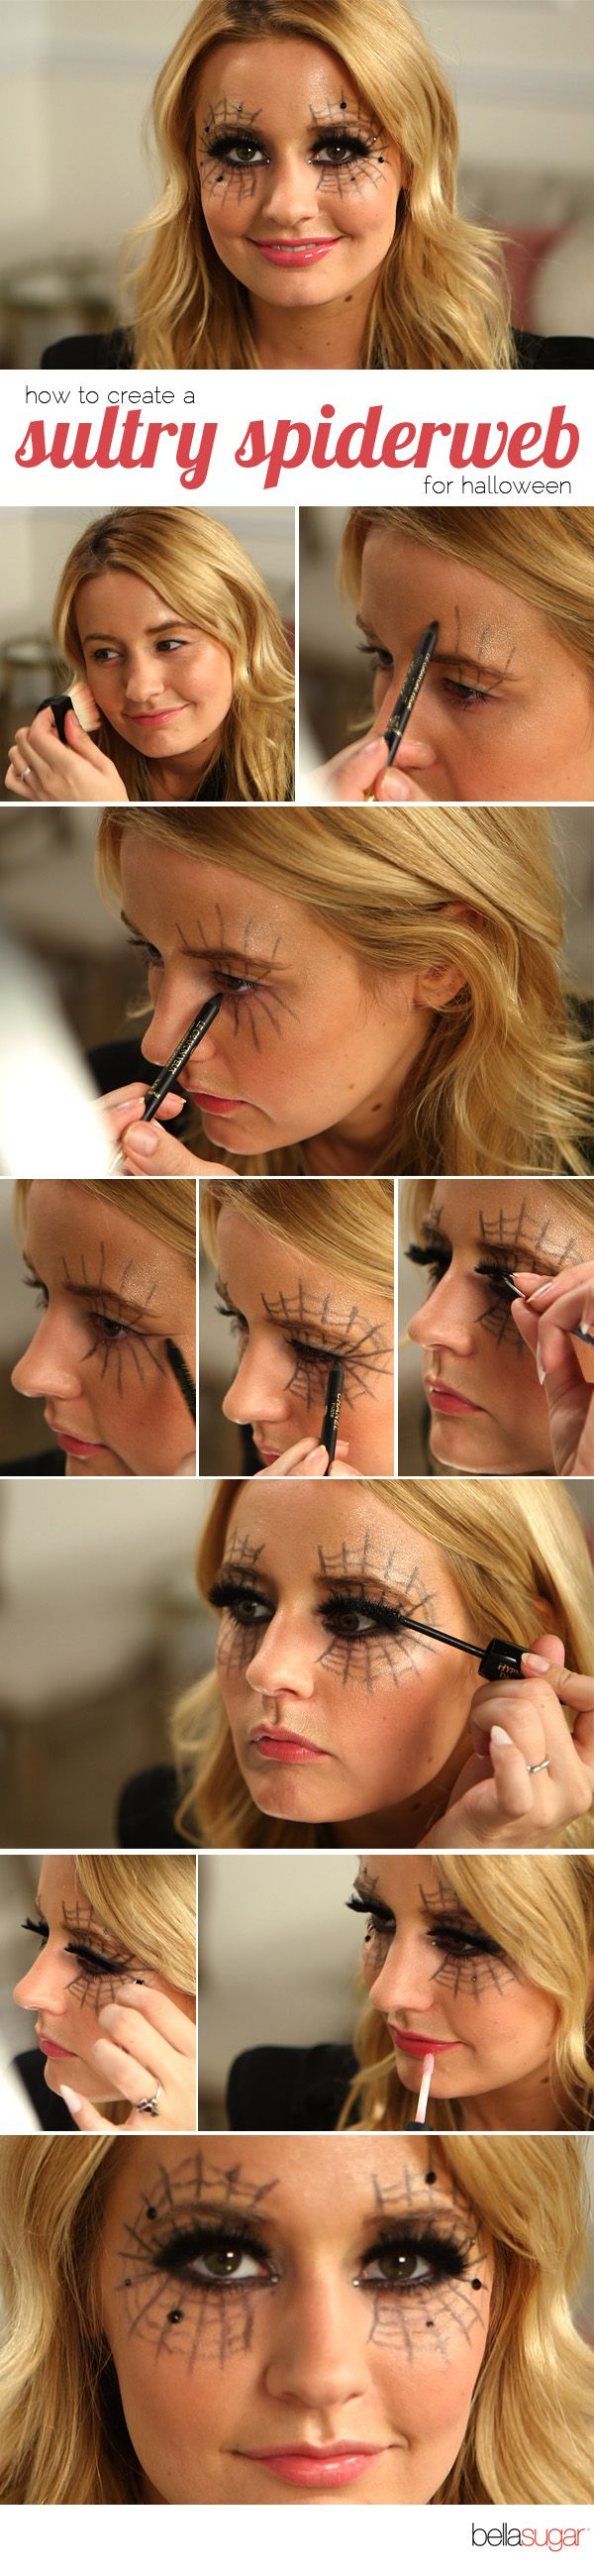 Create a Sultry Spiderweb Eye Look for Halloween